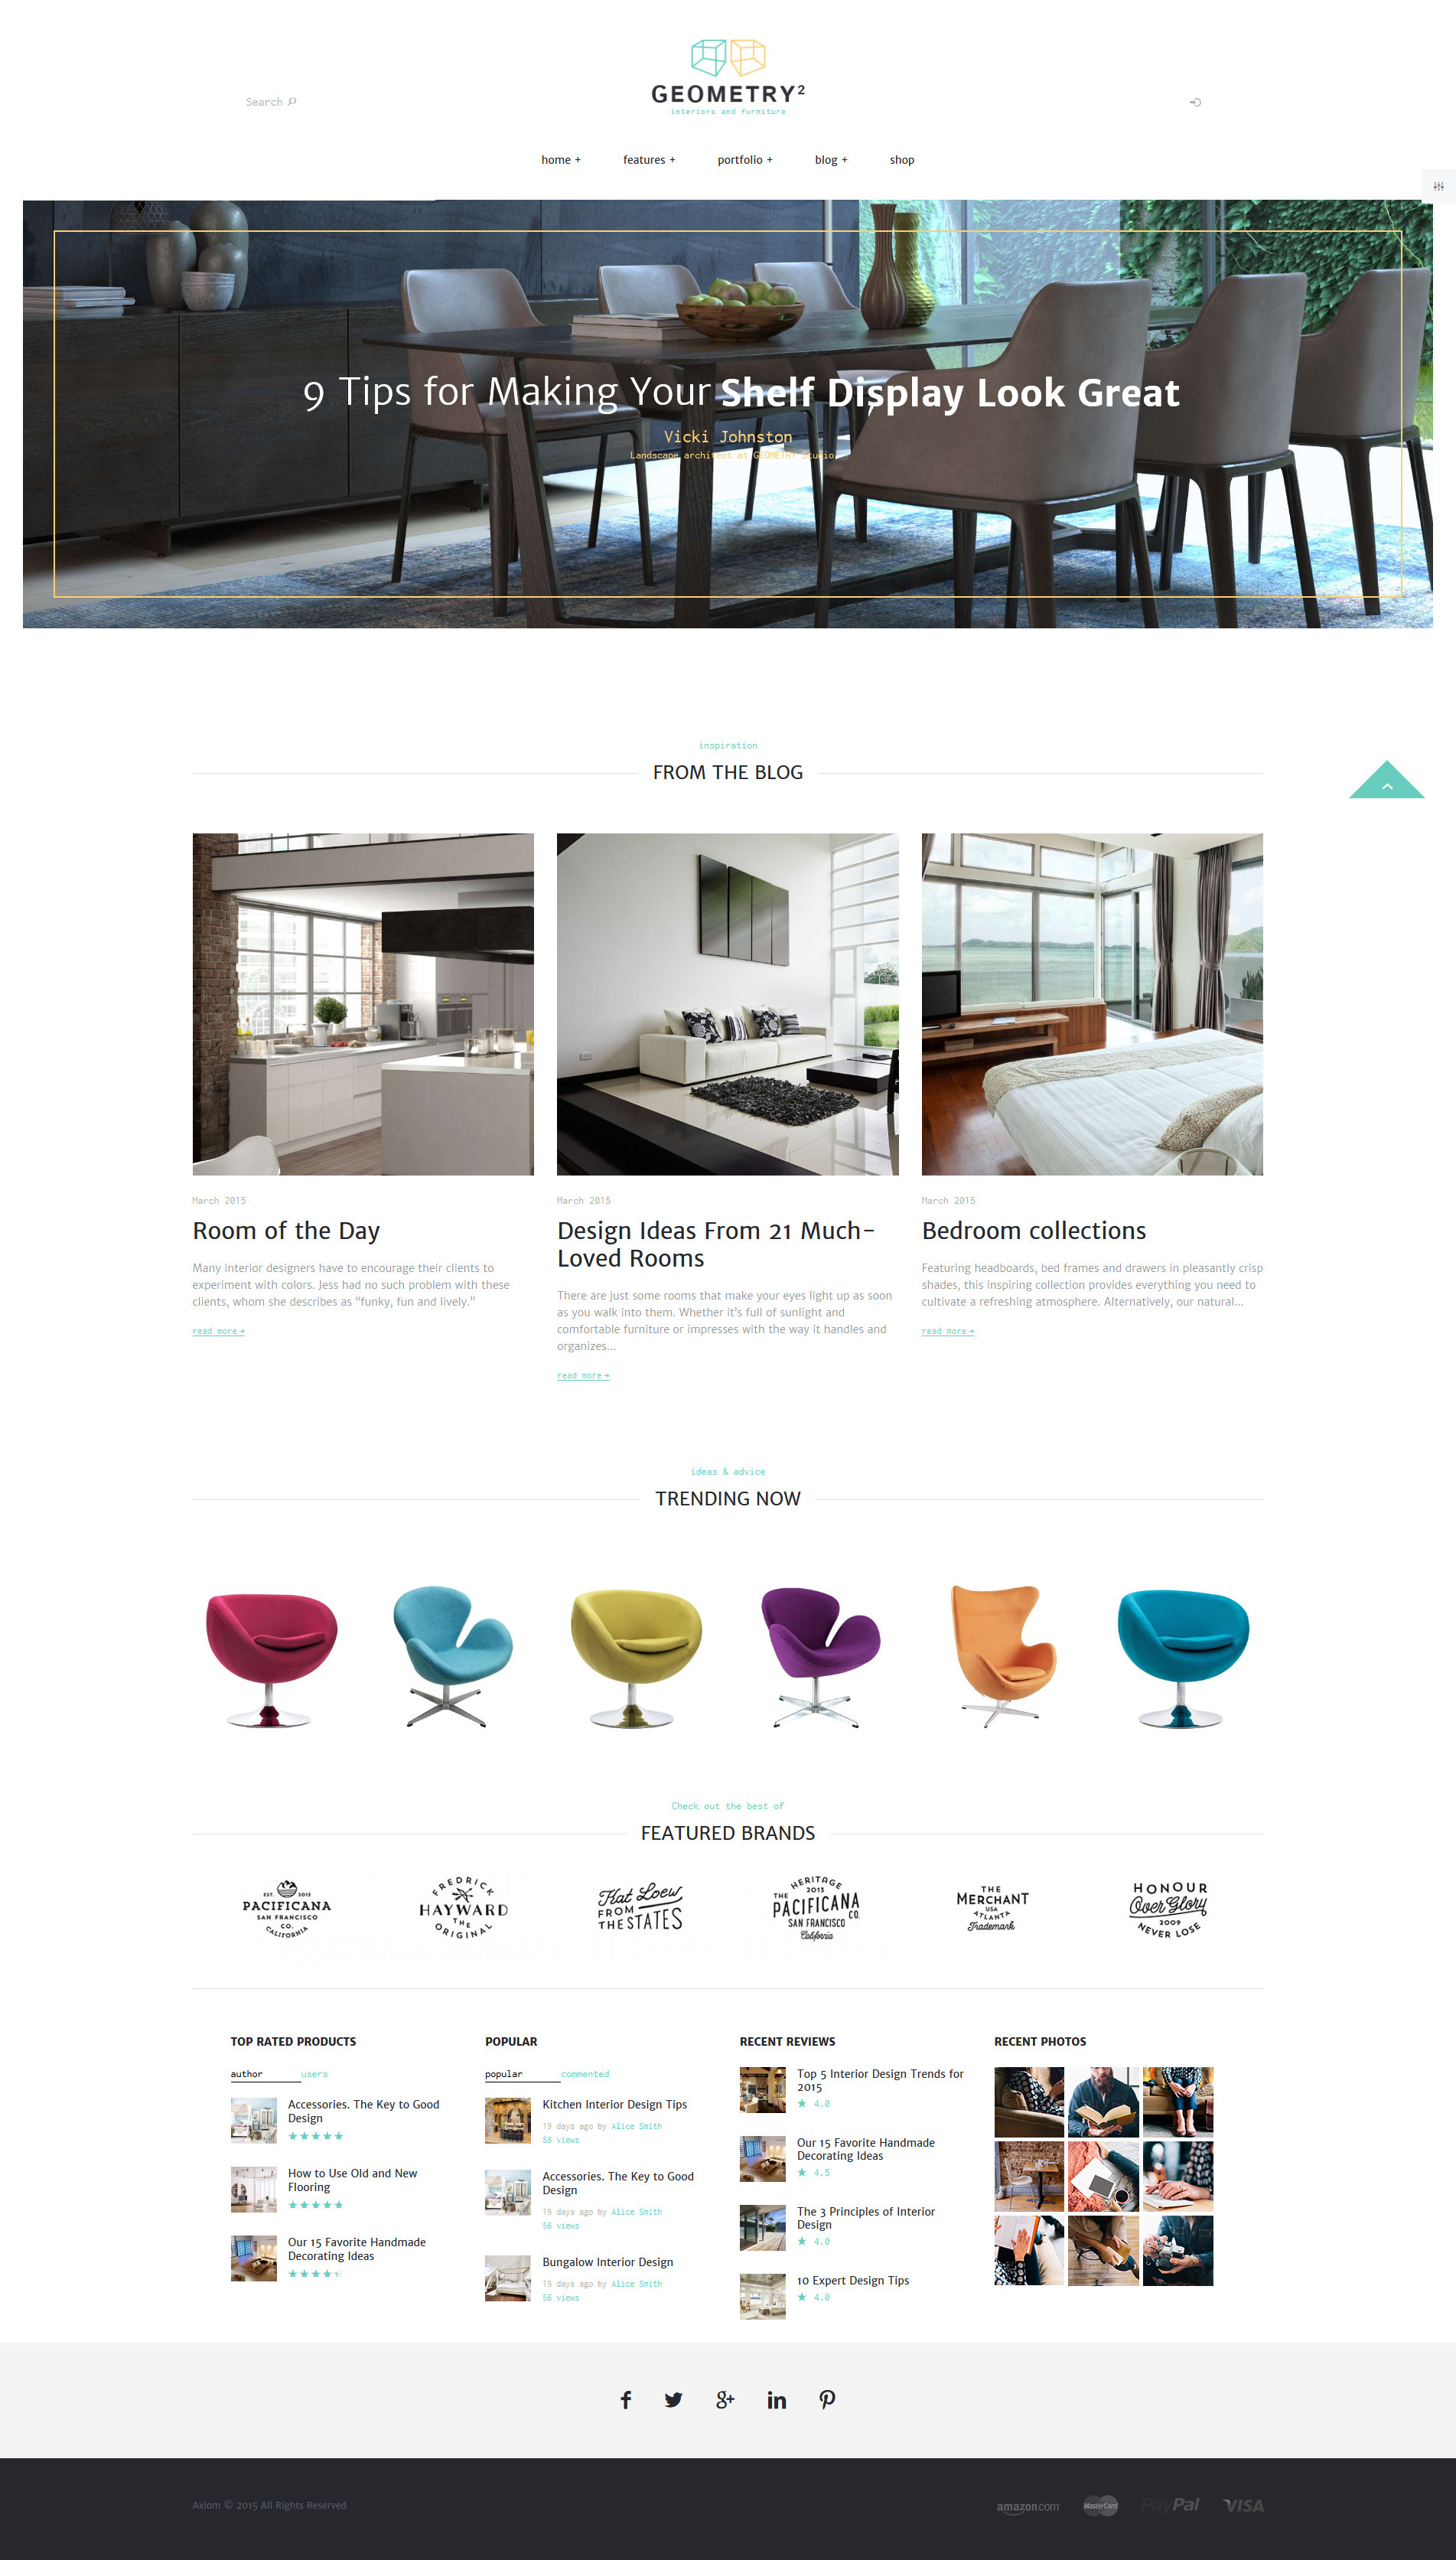 geometry interior design furniture shop by themerex themeforest screen 00 preview jpg screen 01 home interior company jpg screen 02 home design agency jpg screen 03 home interior shop jpg